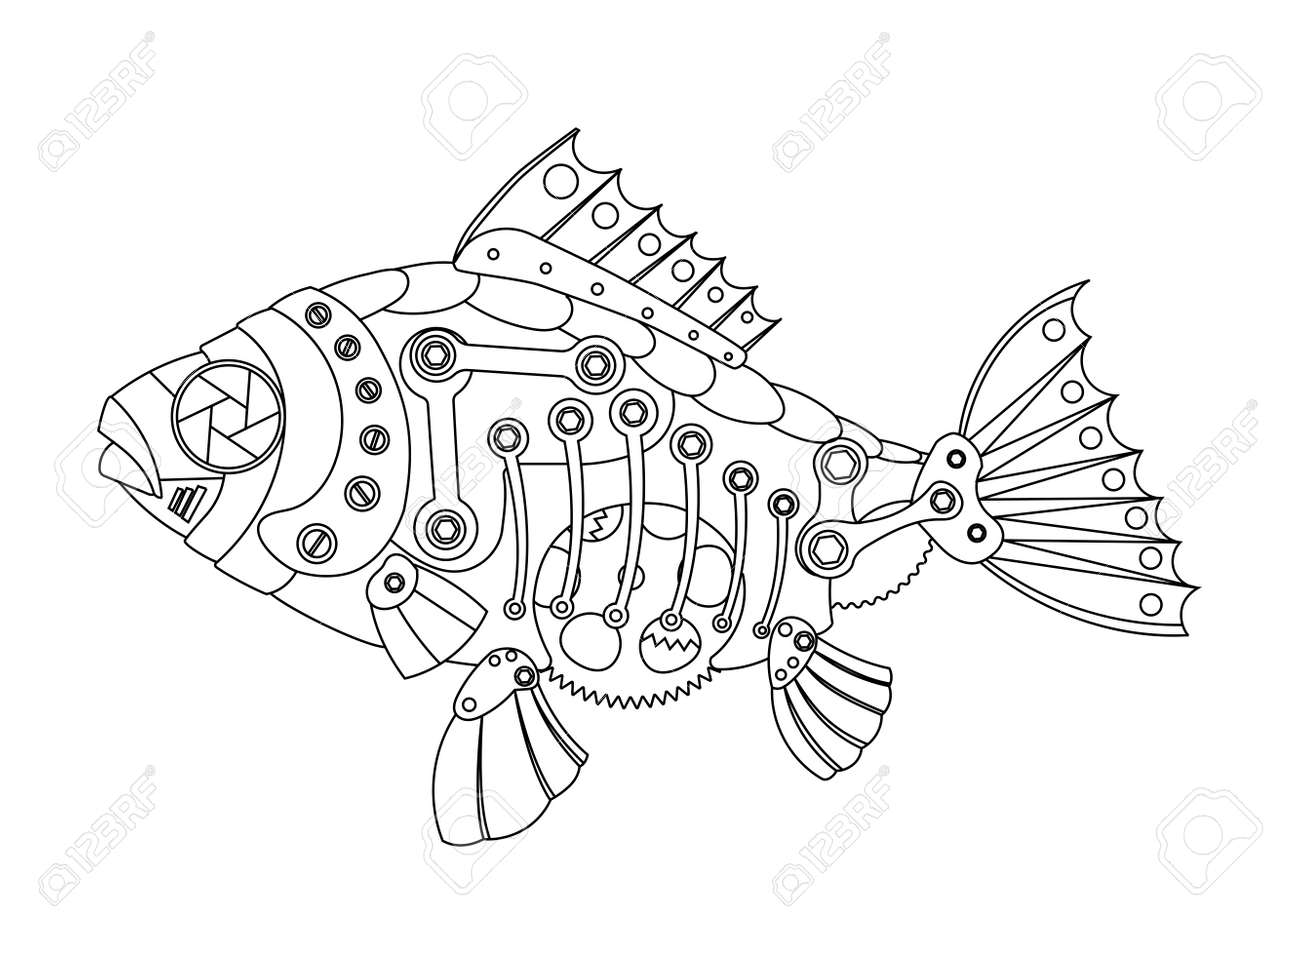 ste unk style fish mechanical animal coloring book for adult  ste unk style fish mechanical animal coloring book for adult vector illustration stock vector